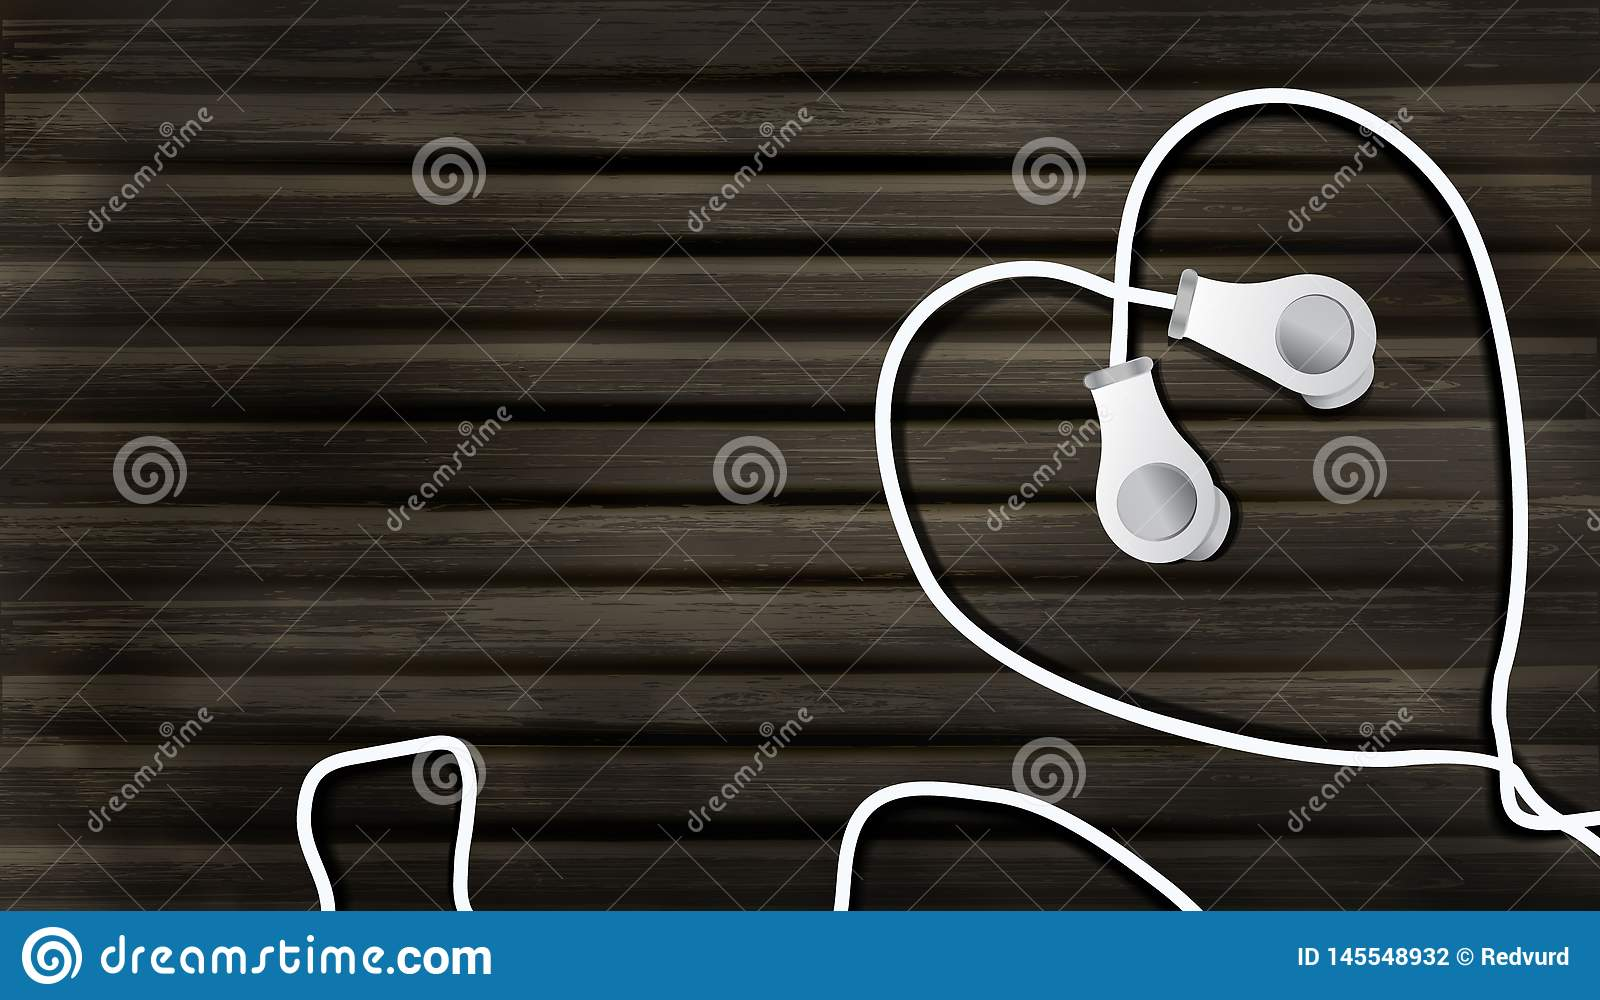 Realistic headphones on a wooden background in the form of a heart. object to listen to music in the style of realism, 3D music